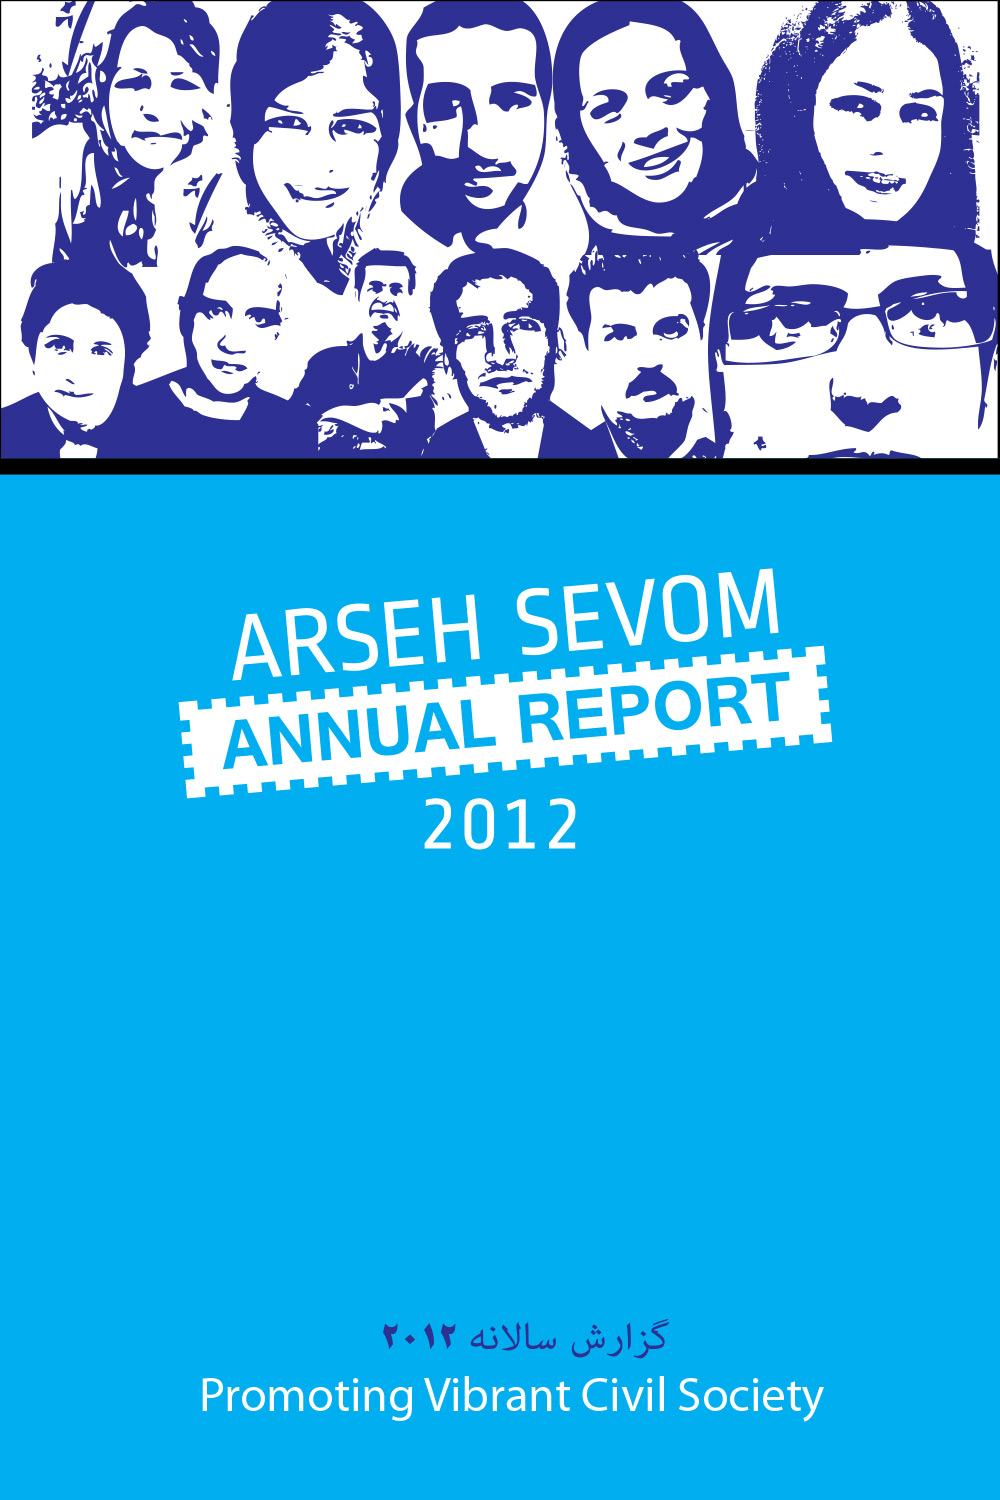 arseh-sevom-annual-report-2012